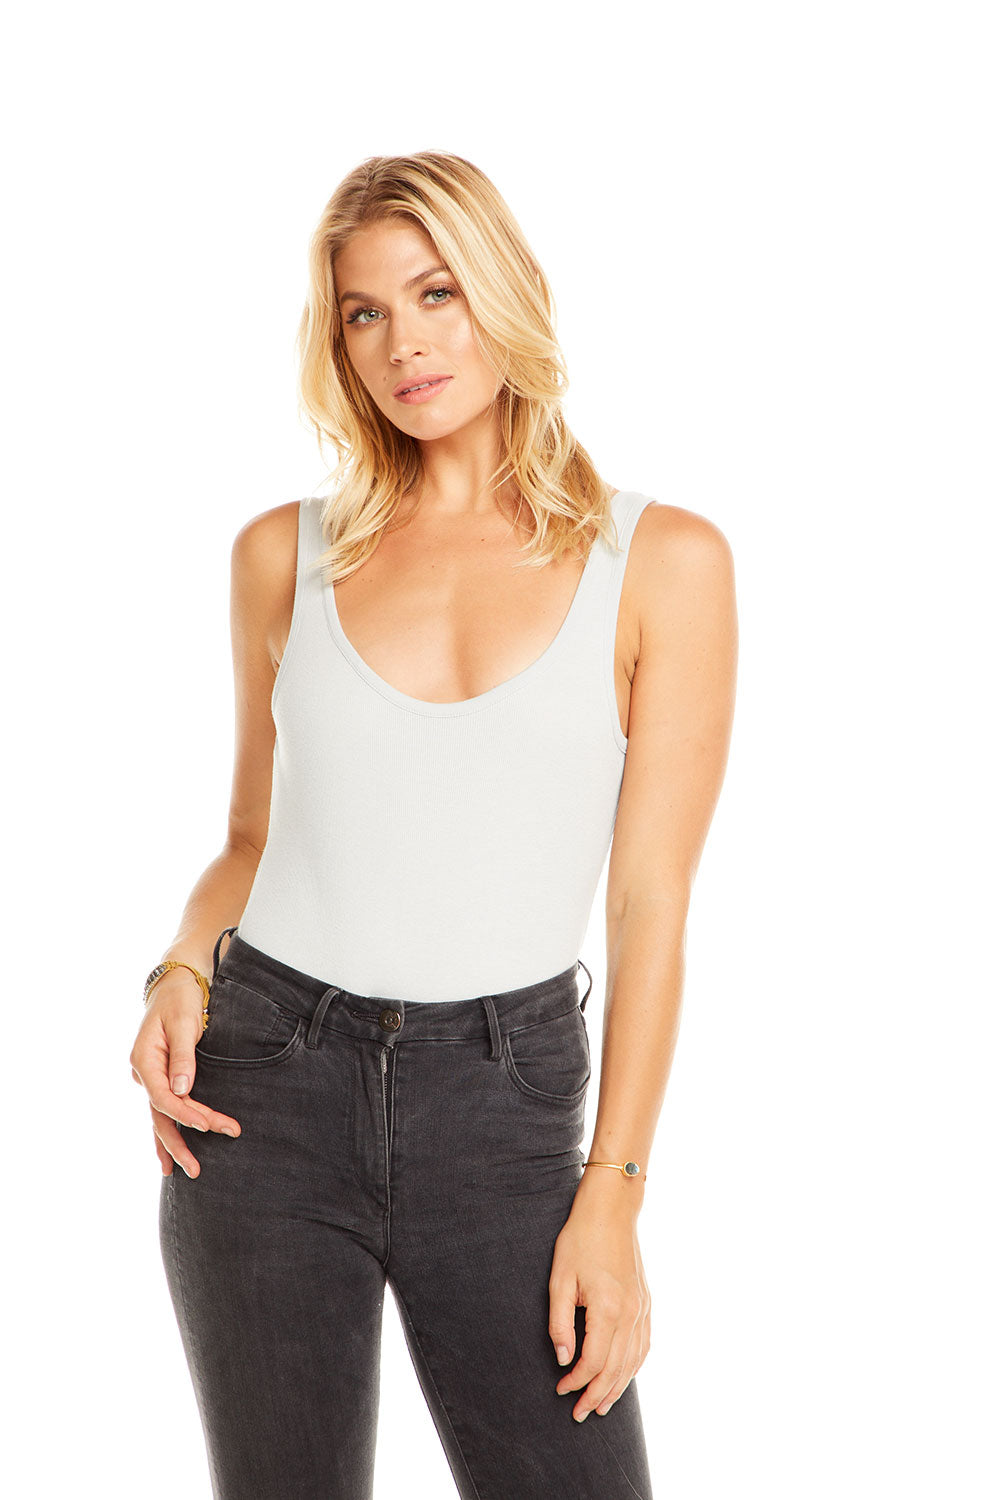 Scoop Neck Bodysuit WOMENS chaserbrand4.myshopify.com